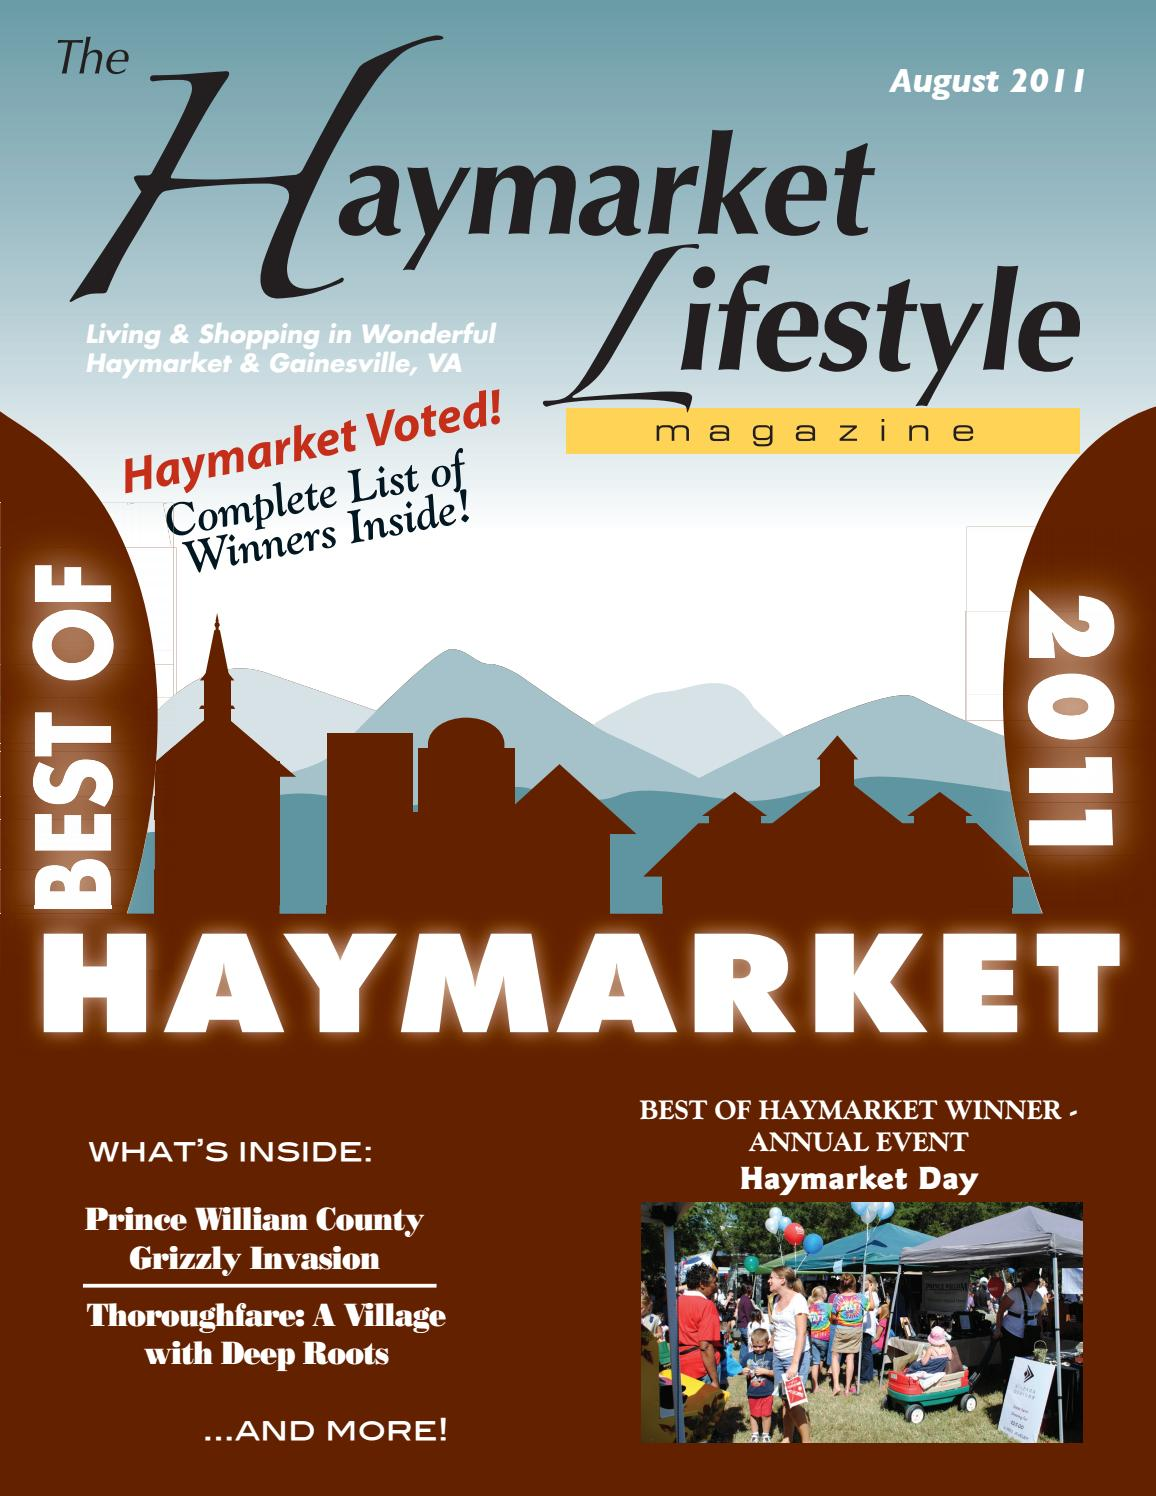 Haymarket lifestyle magazine august 2011 by piedmont publishing group issuu